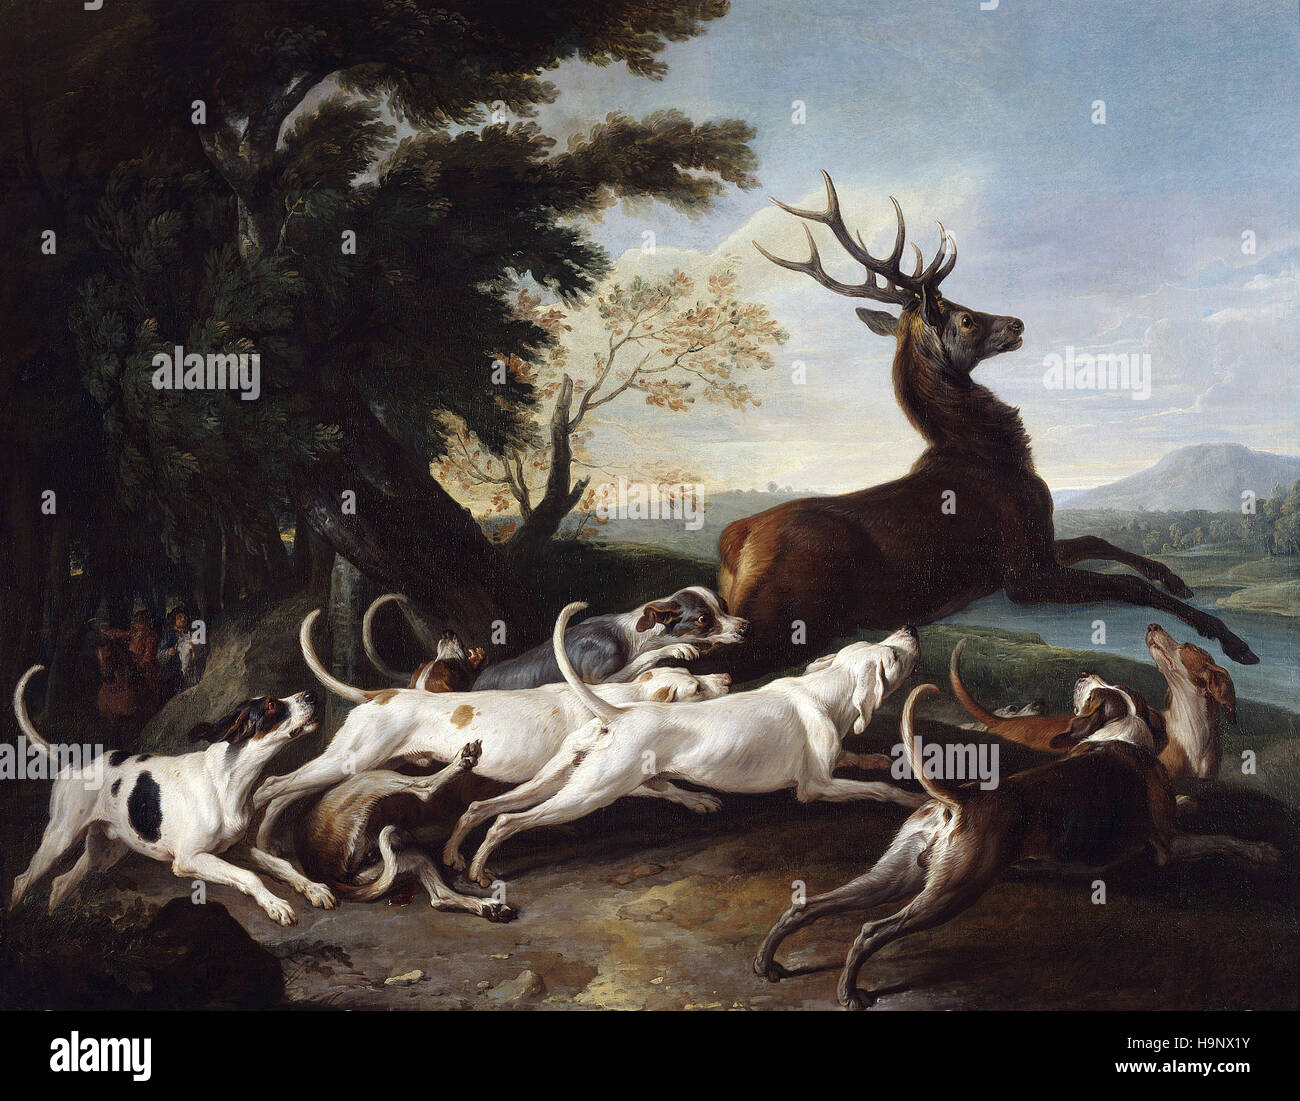 François Desportes   - Stag Driven from the Woods   - 1718 - Stock Image